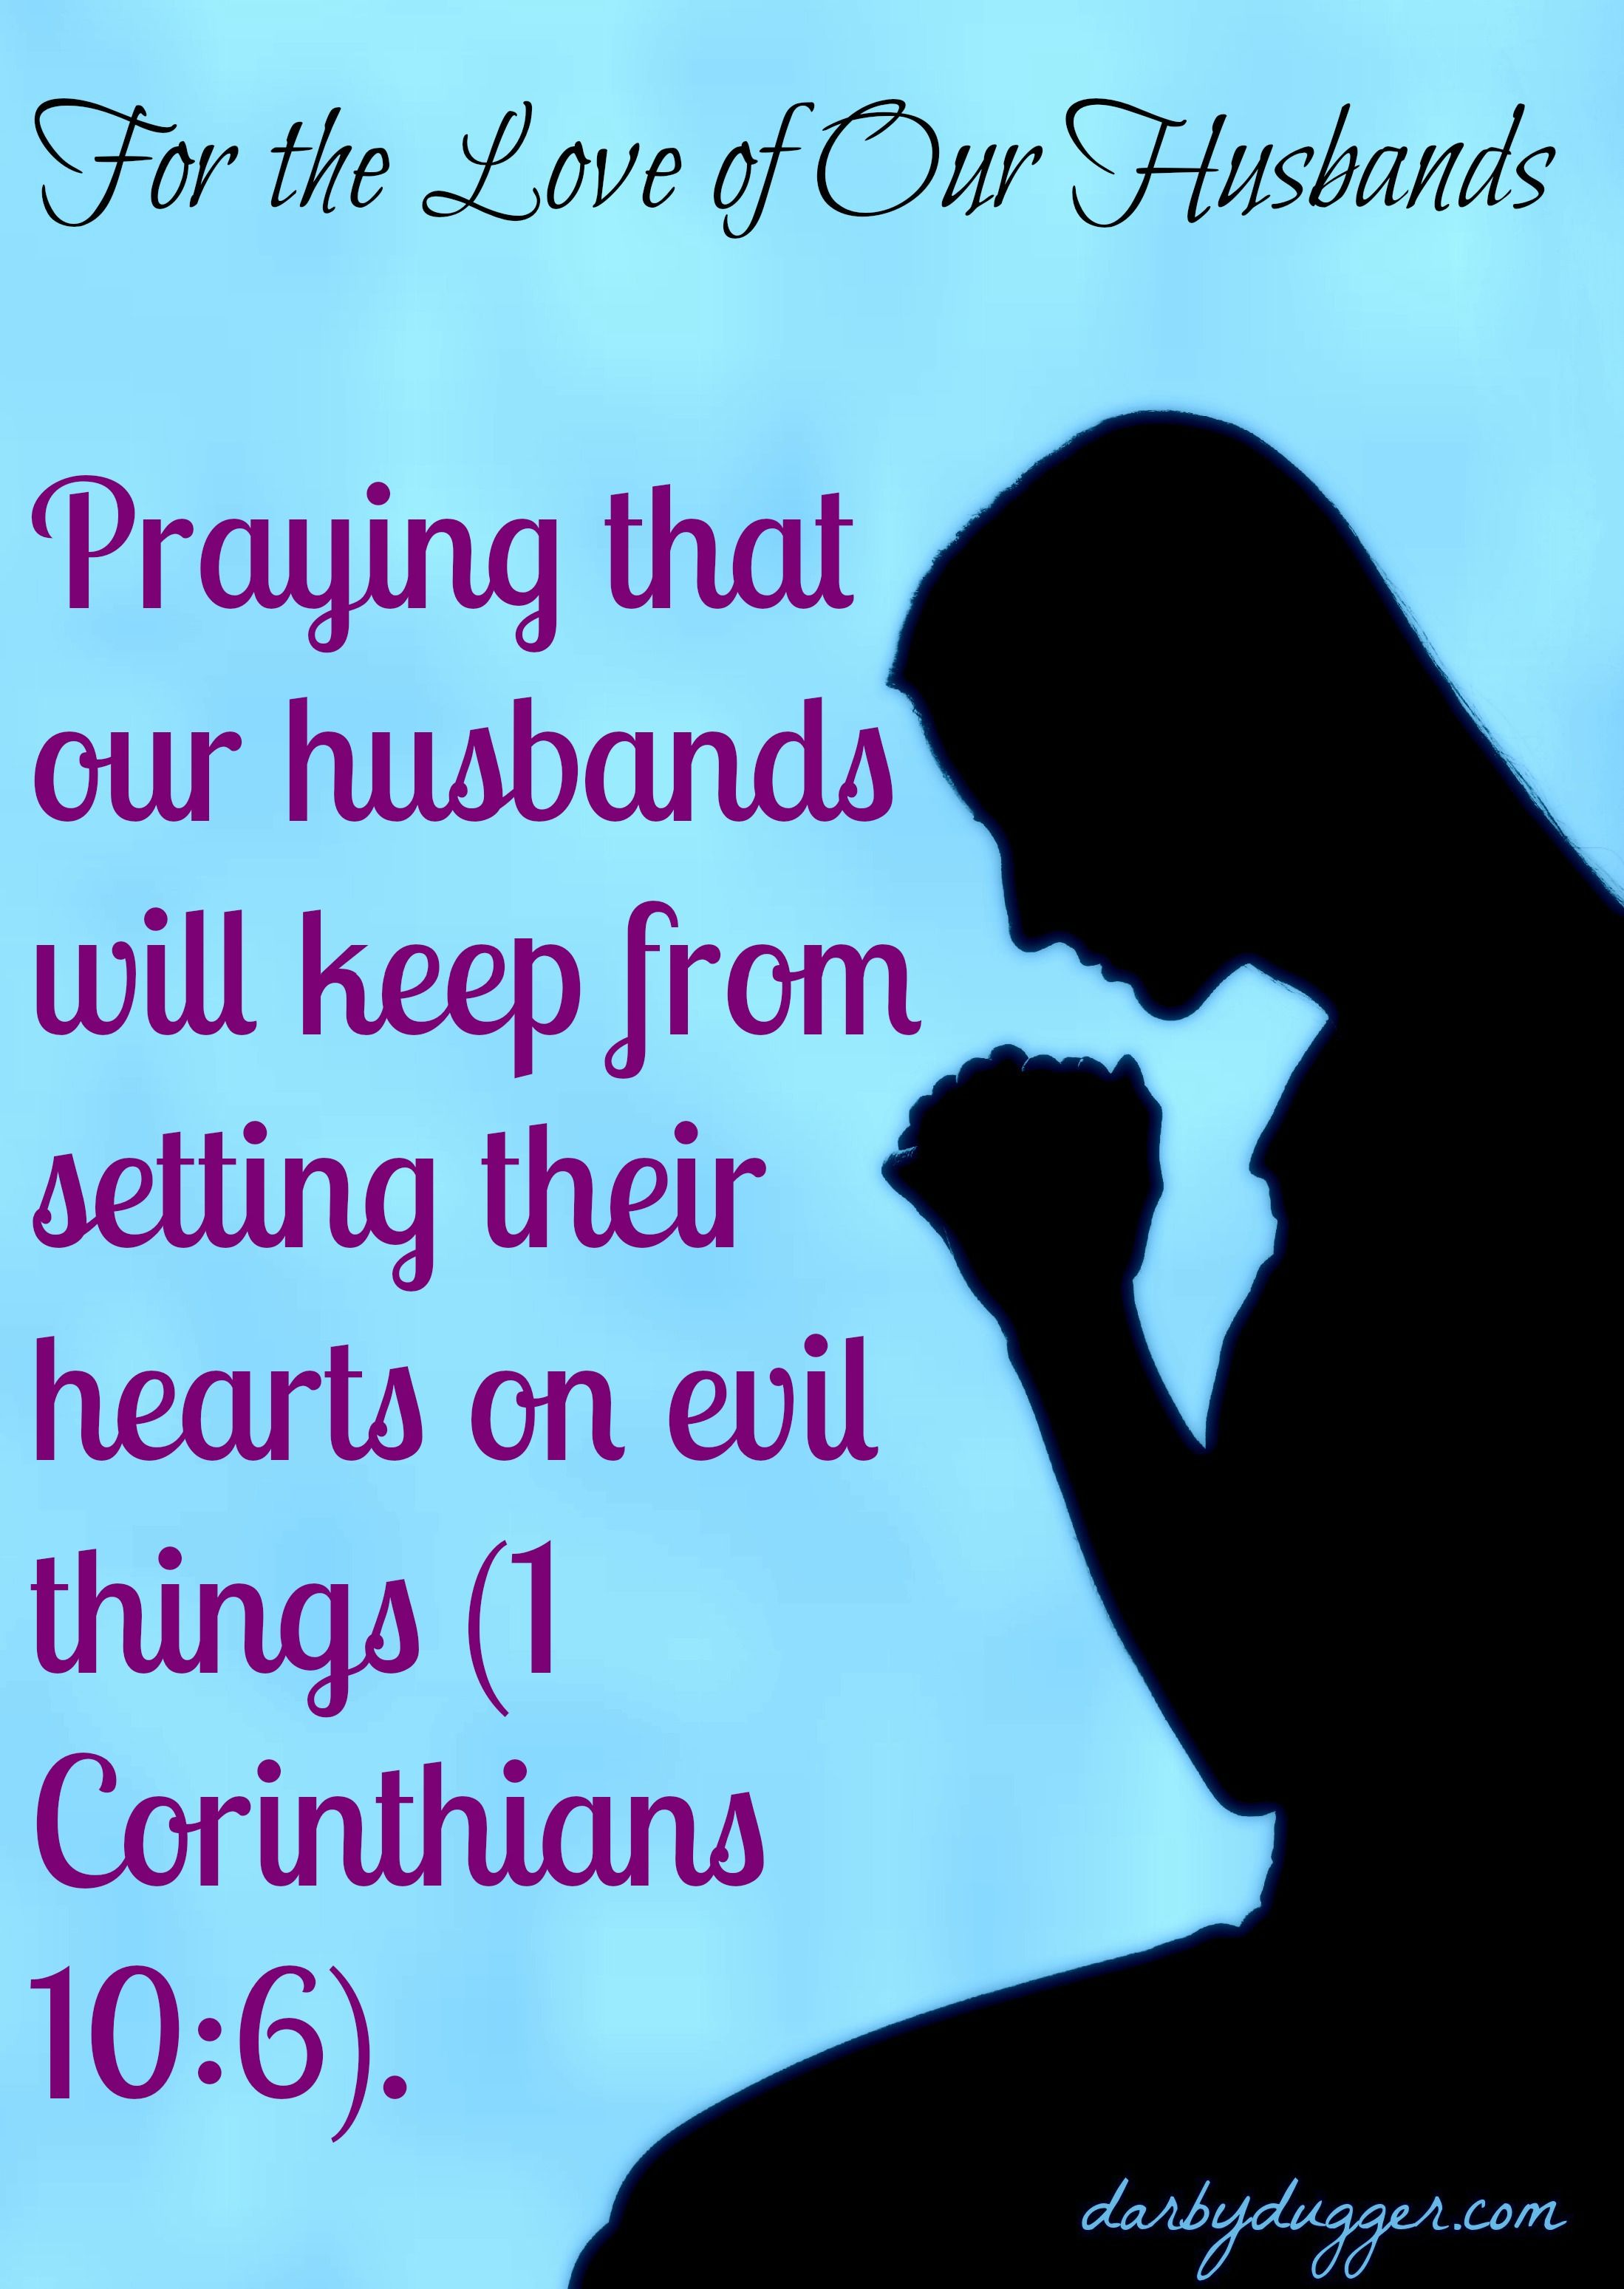 Praying that our husbands will keep from setting their hearts on evil things (1 Corinthians 10:6).